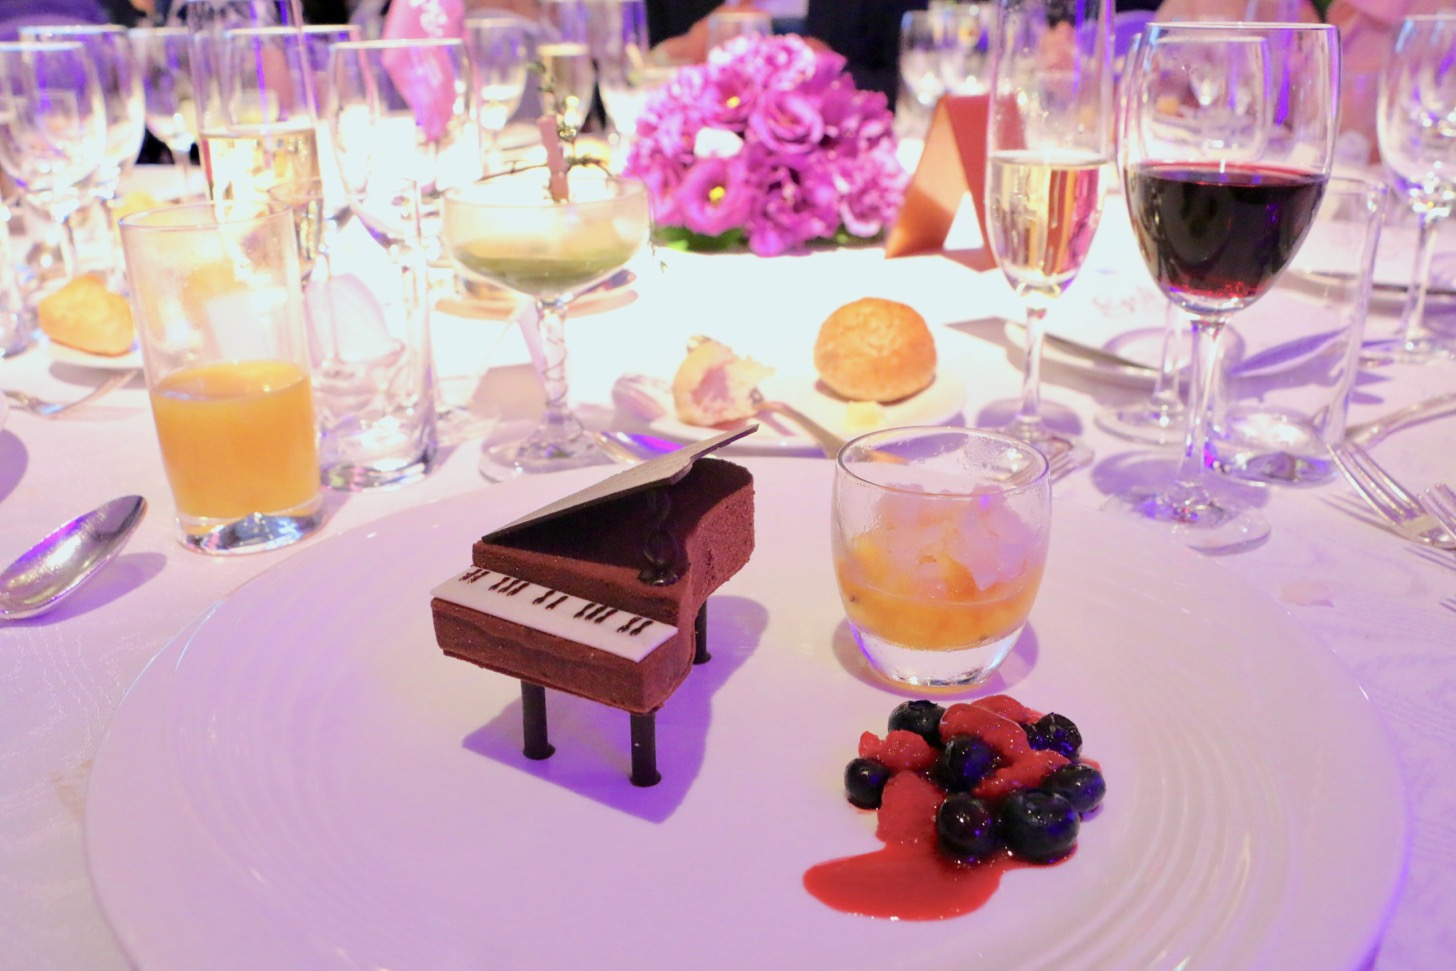 【SPG Amex】 Participate in Luxury Gala Dinner! We have experienced the best dinners gathered by chefs of 11 hotel brands! # spgamex # spglife